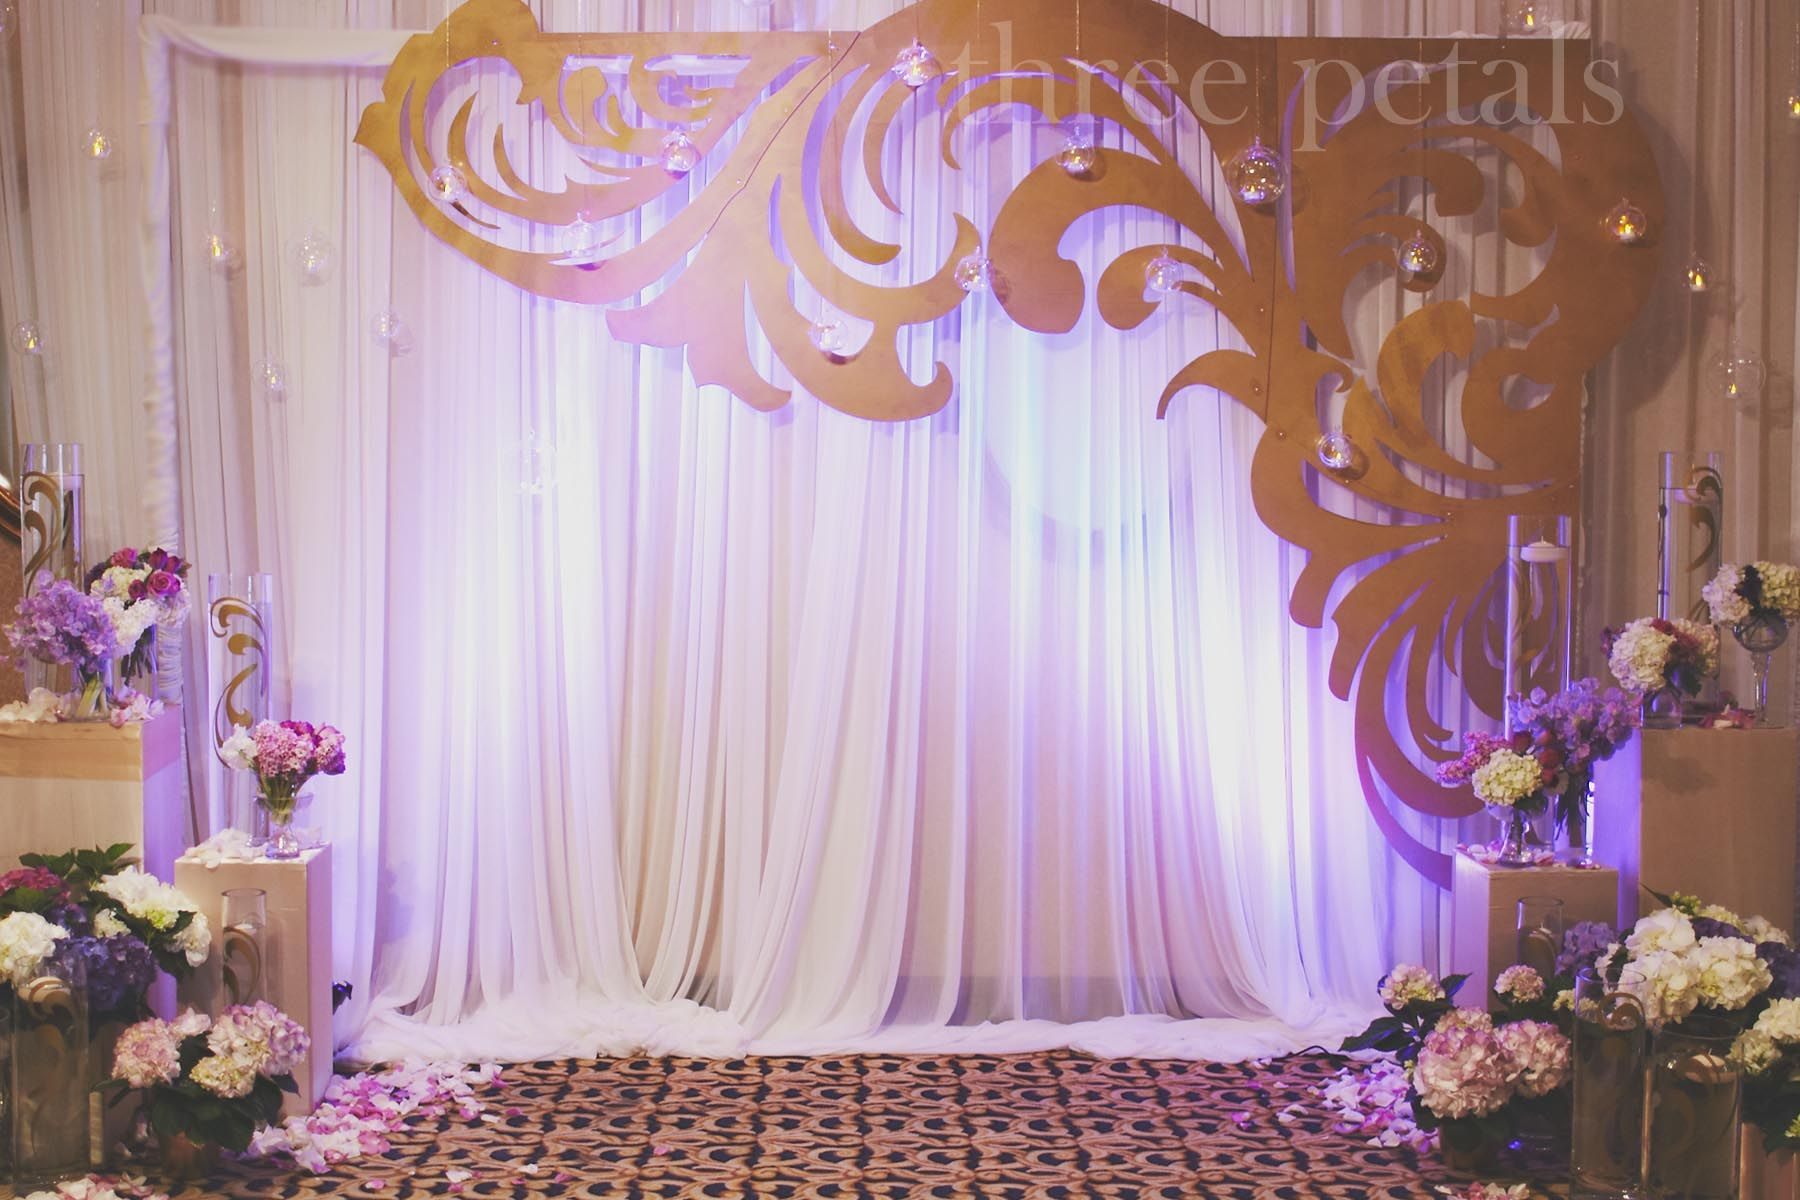 Wedding backdrop with decorative cutout wedding for Party backdrop ideas